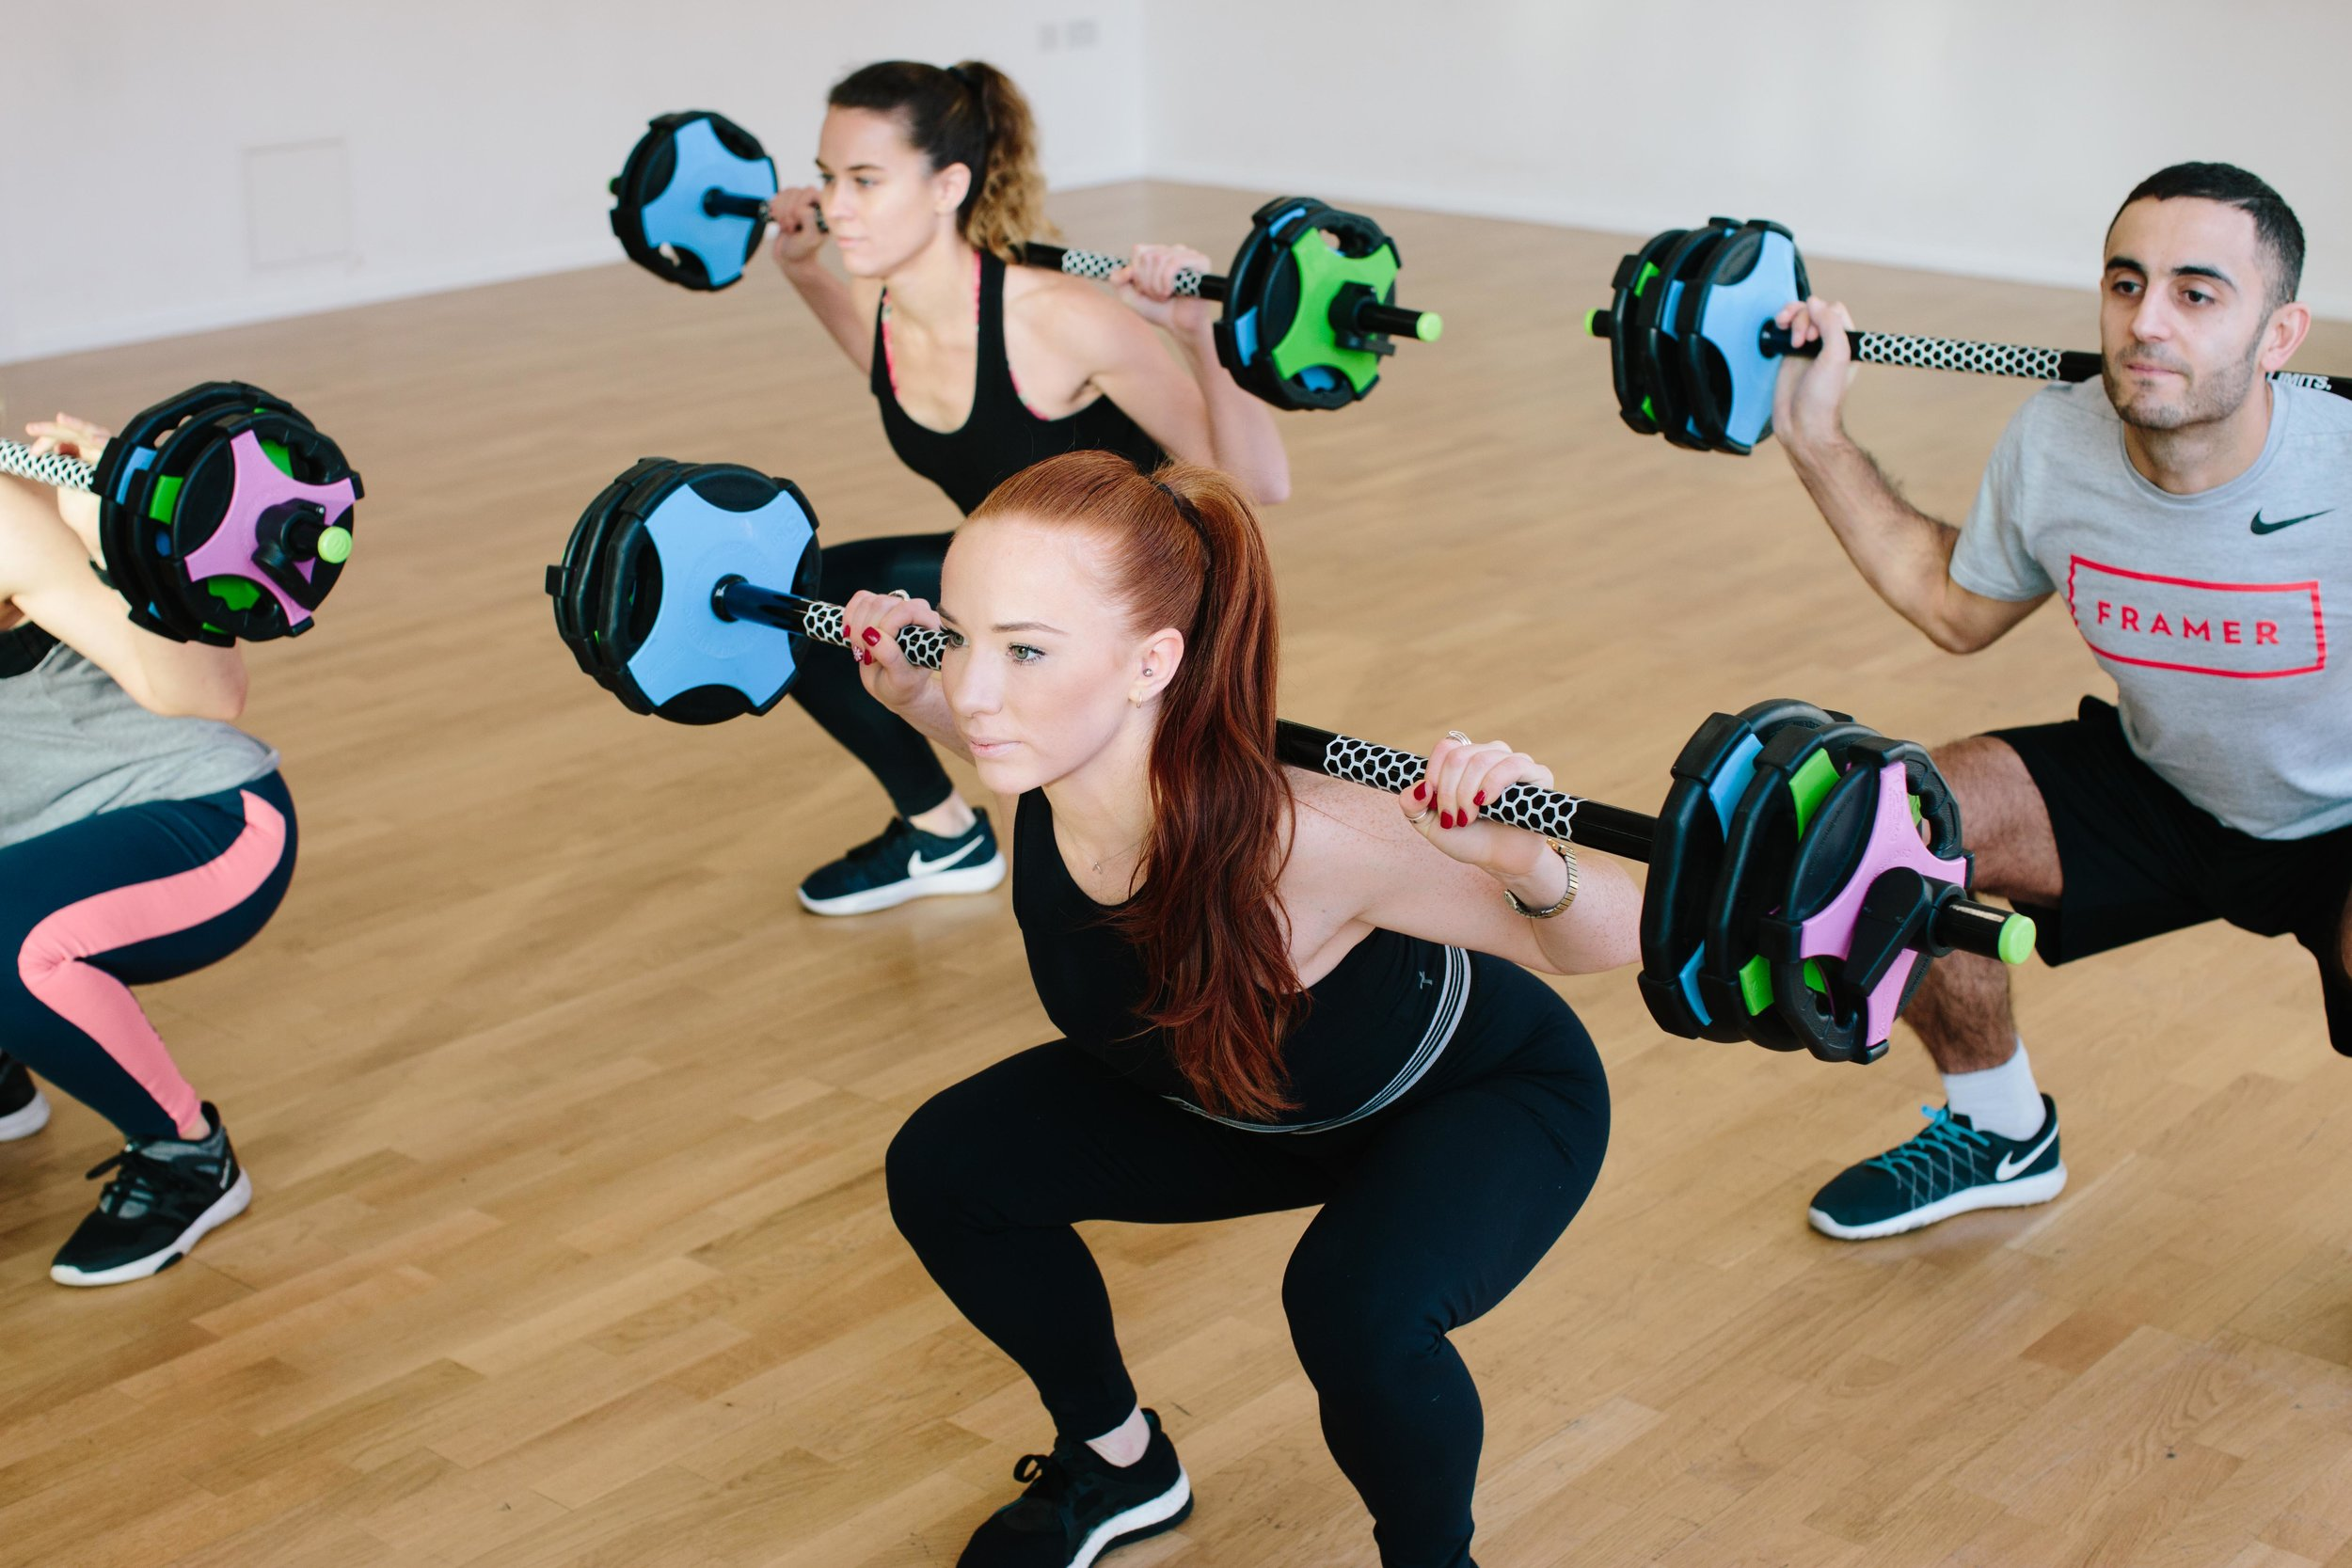 I MOVE ME HIIT STRENGTH FRAME SHOREDITCH LONDON BOUTIQUE FITNESS STUDIO WEIGHTS BARBELL